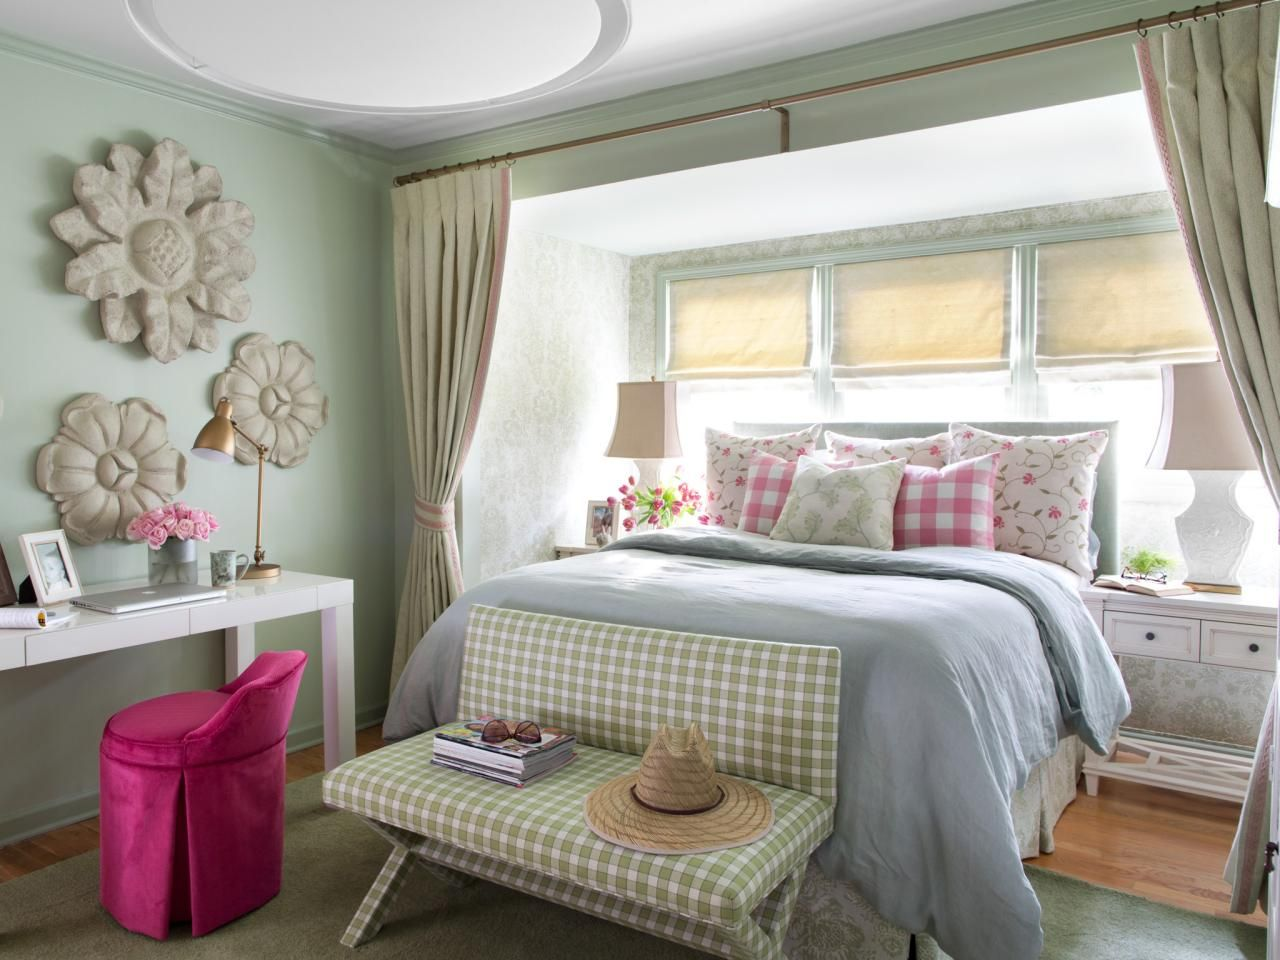 Country Cottage Bedrooms Model Property cottage-style bedroom decorating ideas | bedroom nook, cottage